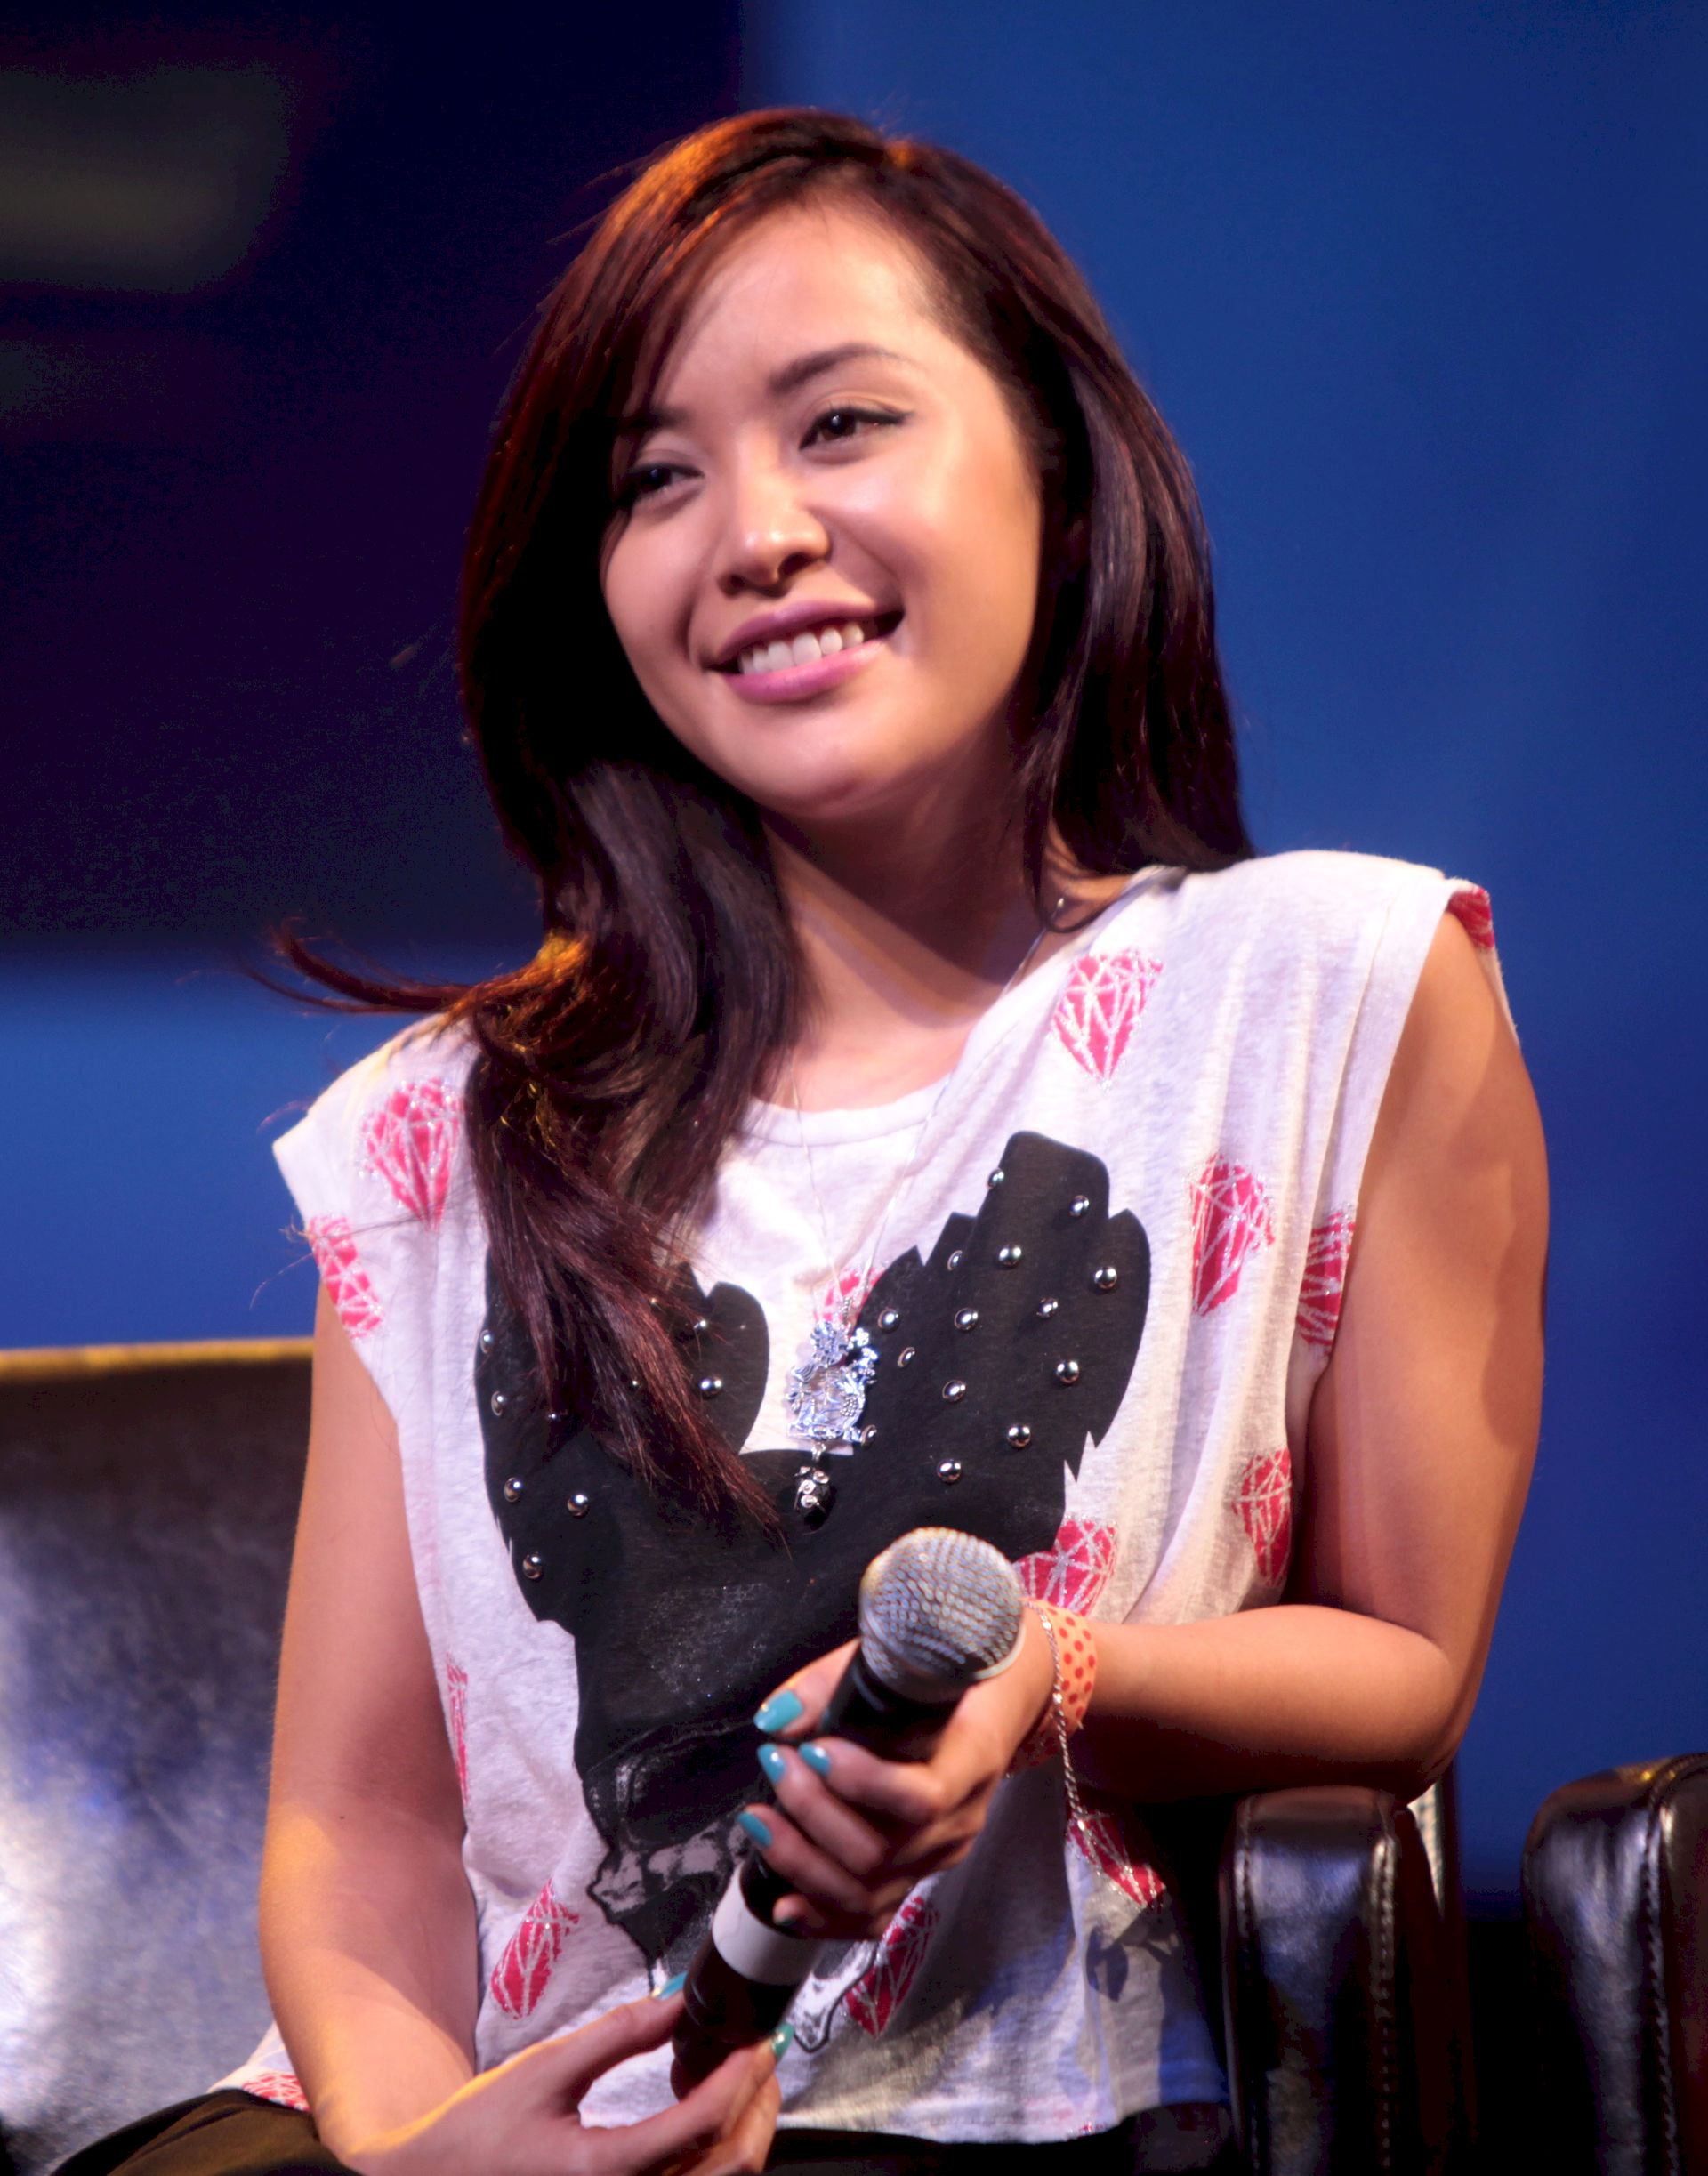 Photo of Michelle Phan: American YouTube personality